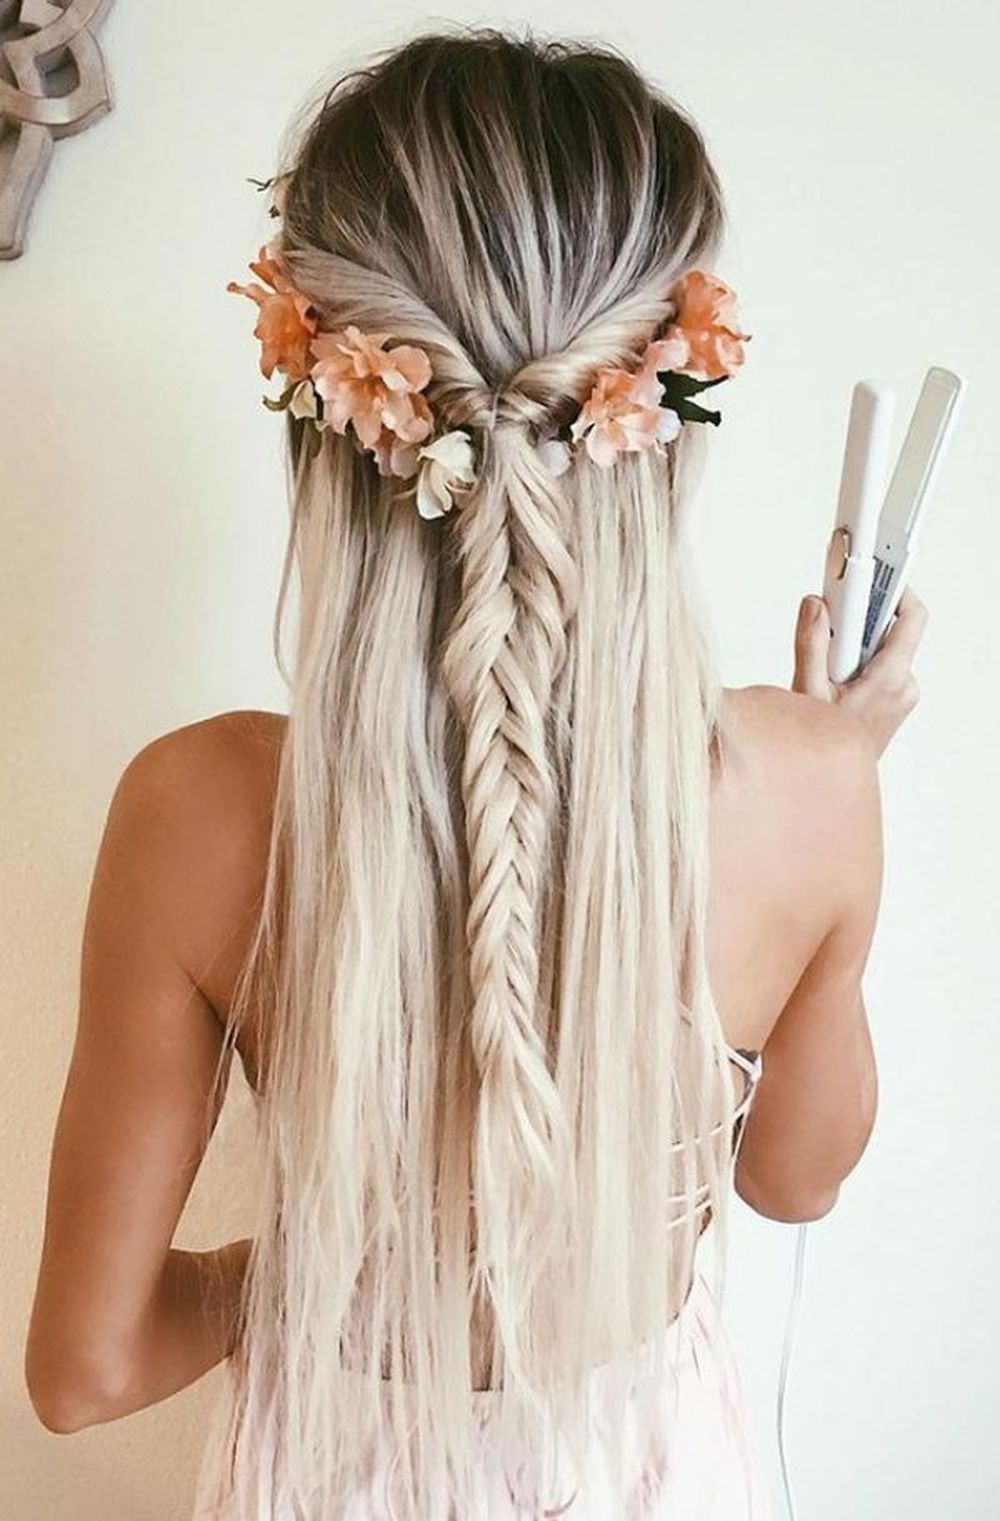 Breathtaking 72 Trending Easy Hairstyle Ideas to Try Right Now by ...